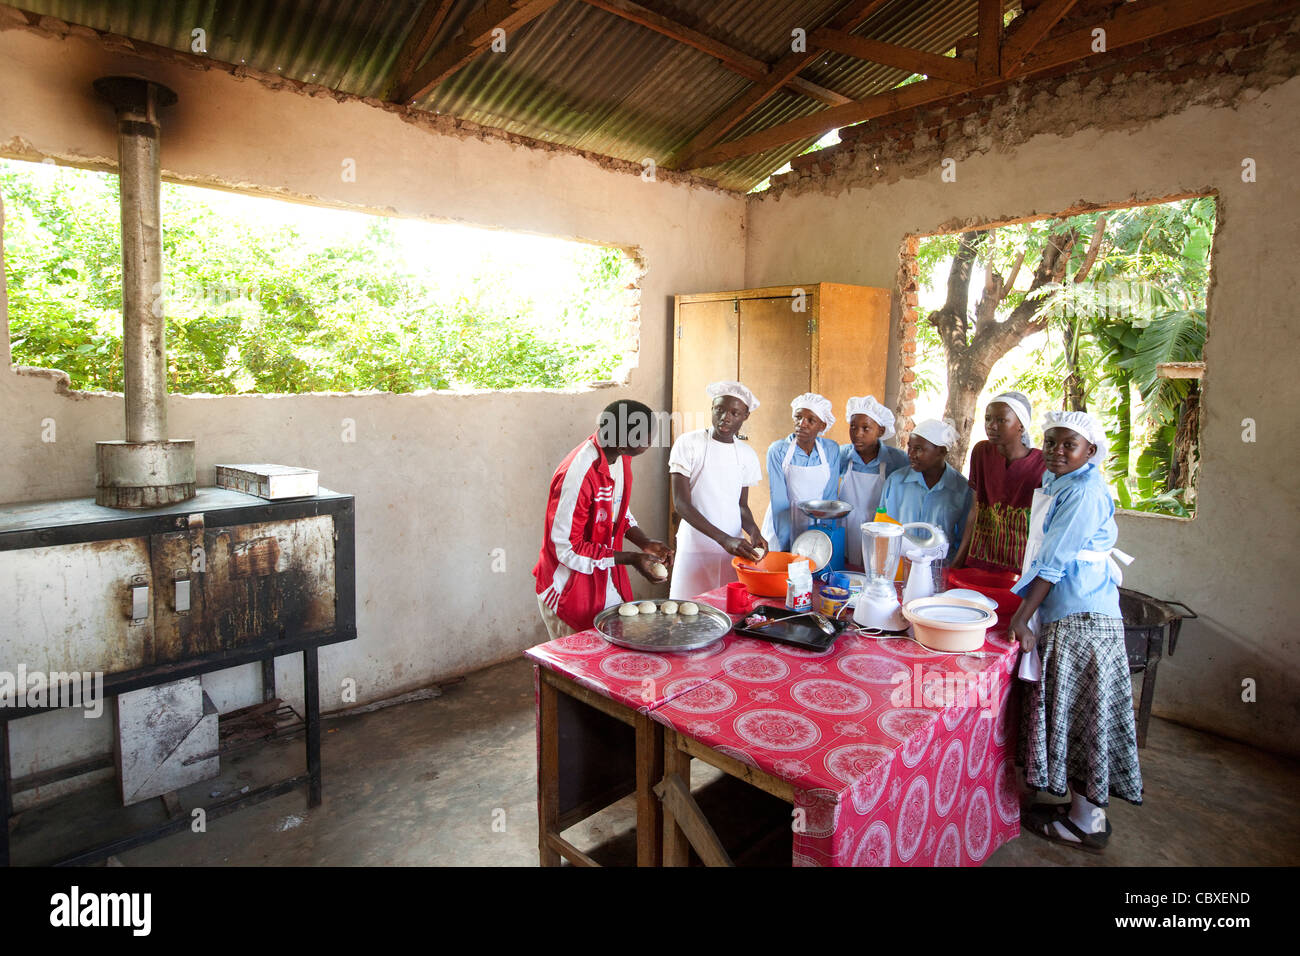 Students attend a culinary arts class in Morogoro, Tanzania, East Africa. - Stock Image